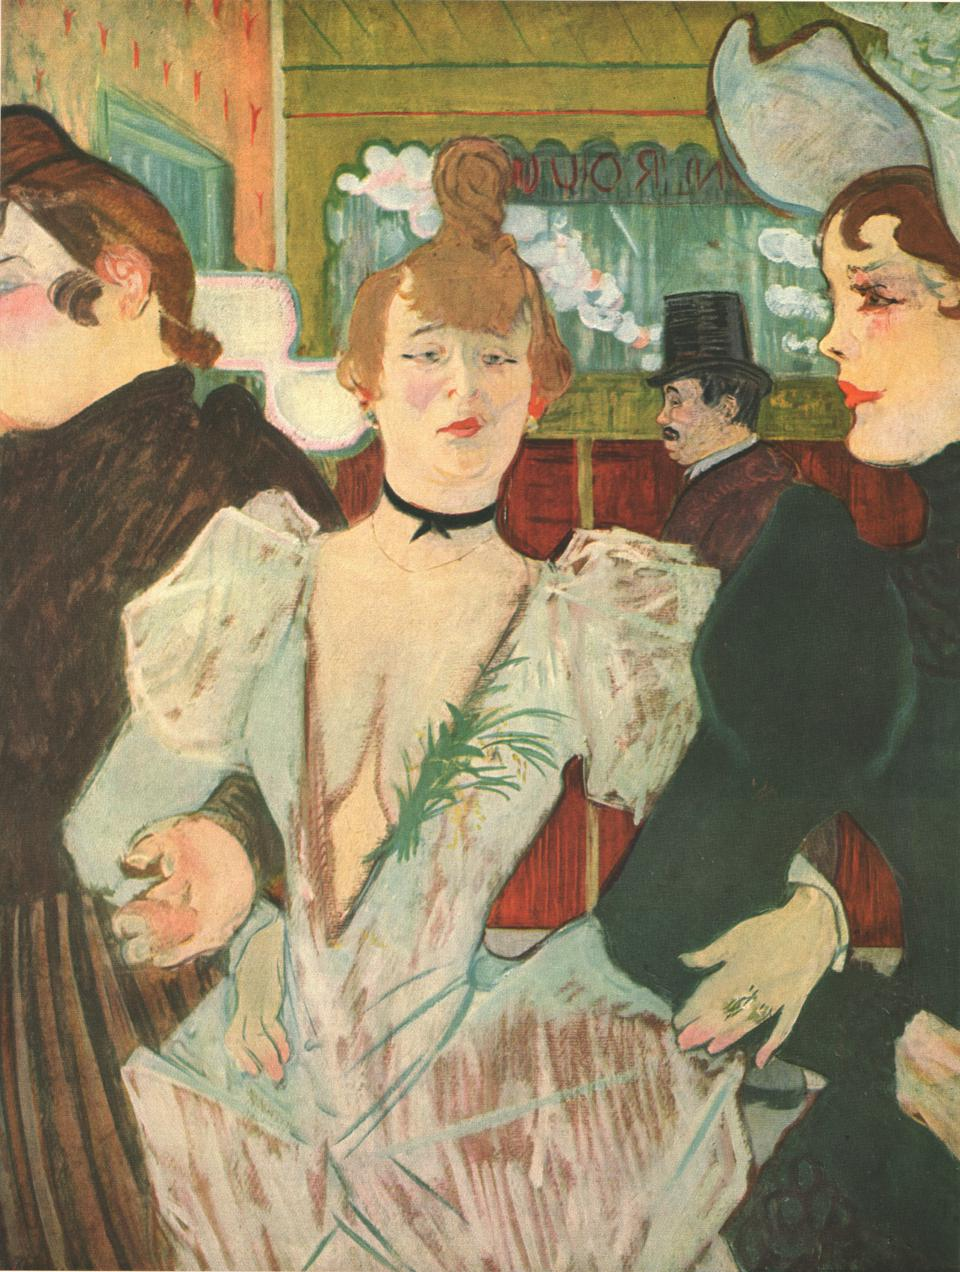 I Knew About Toulouse-Lautrec's Infatuation For Women, Not Dandies